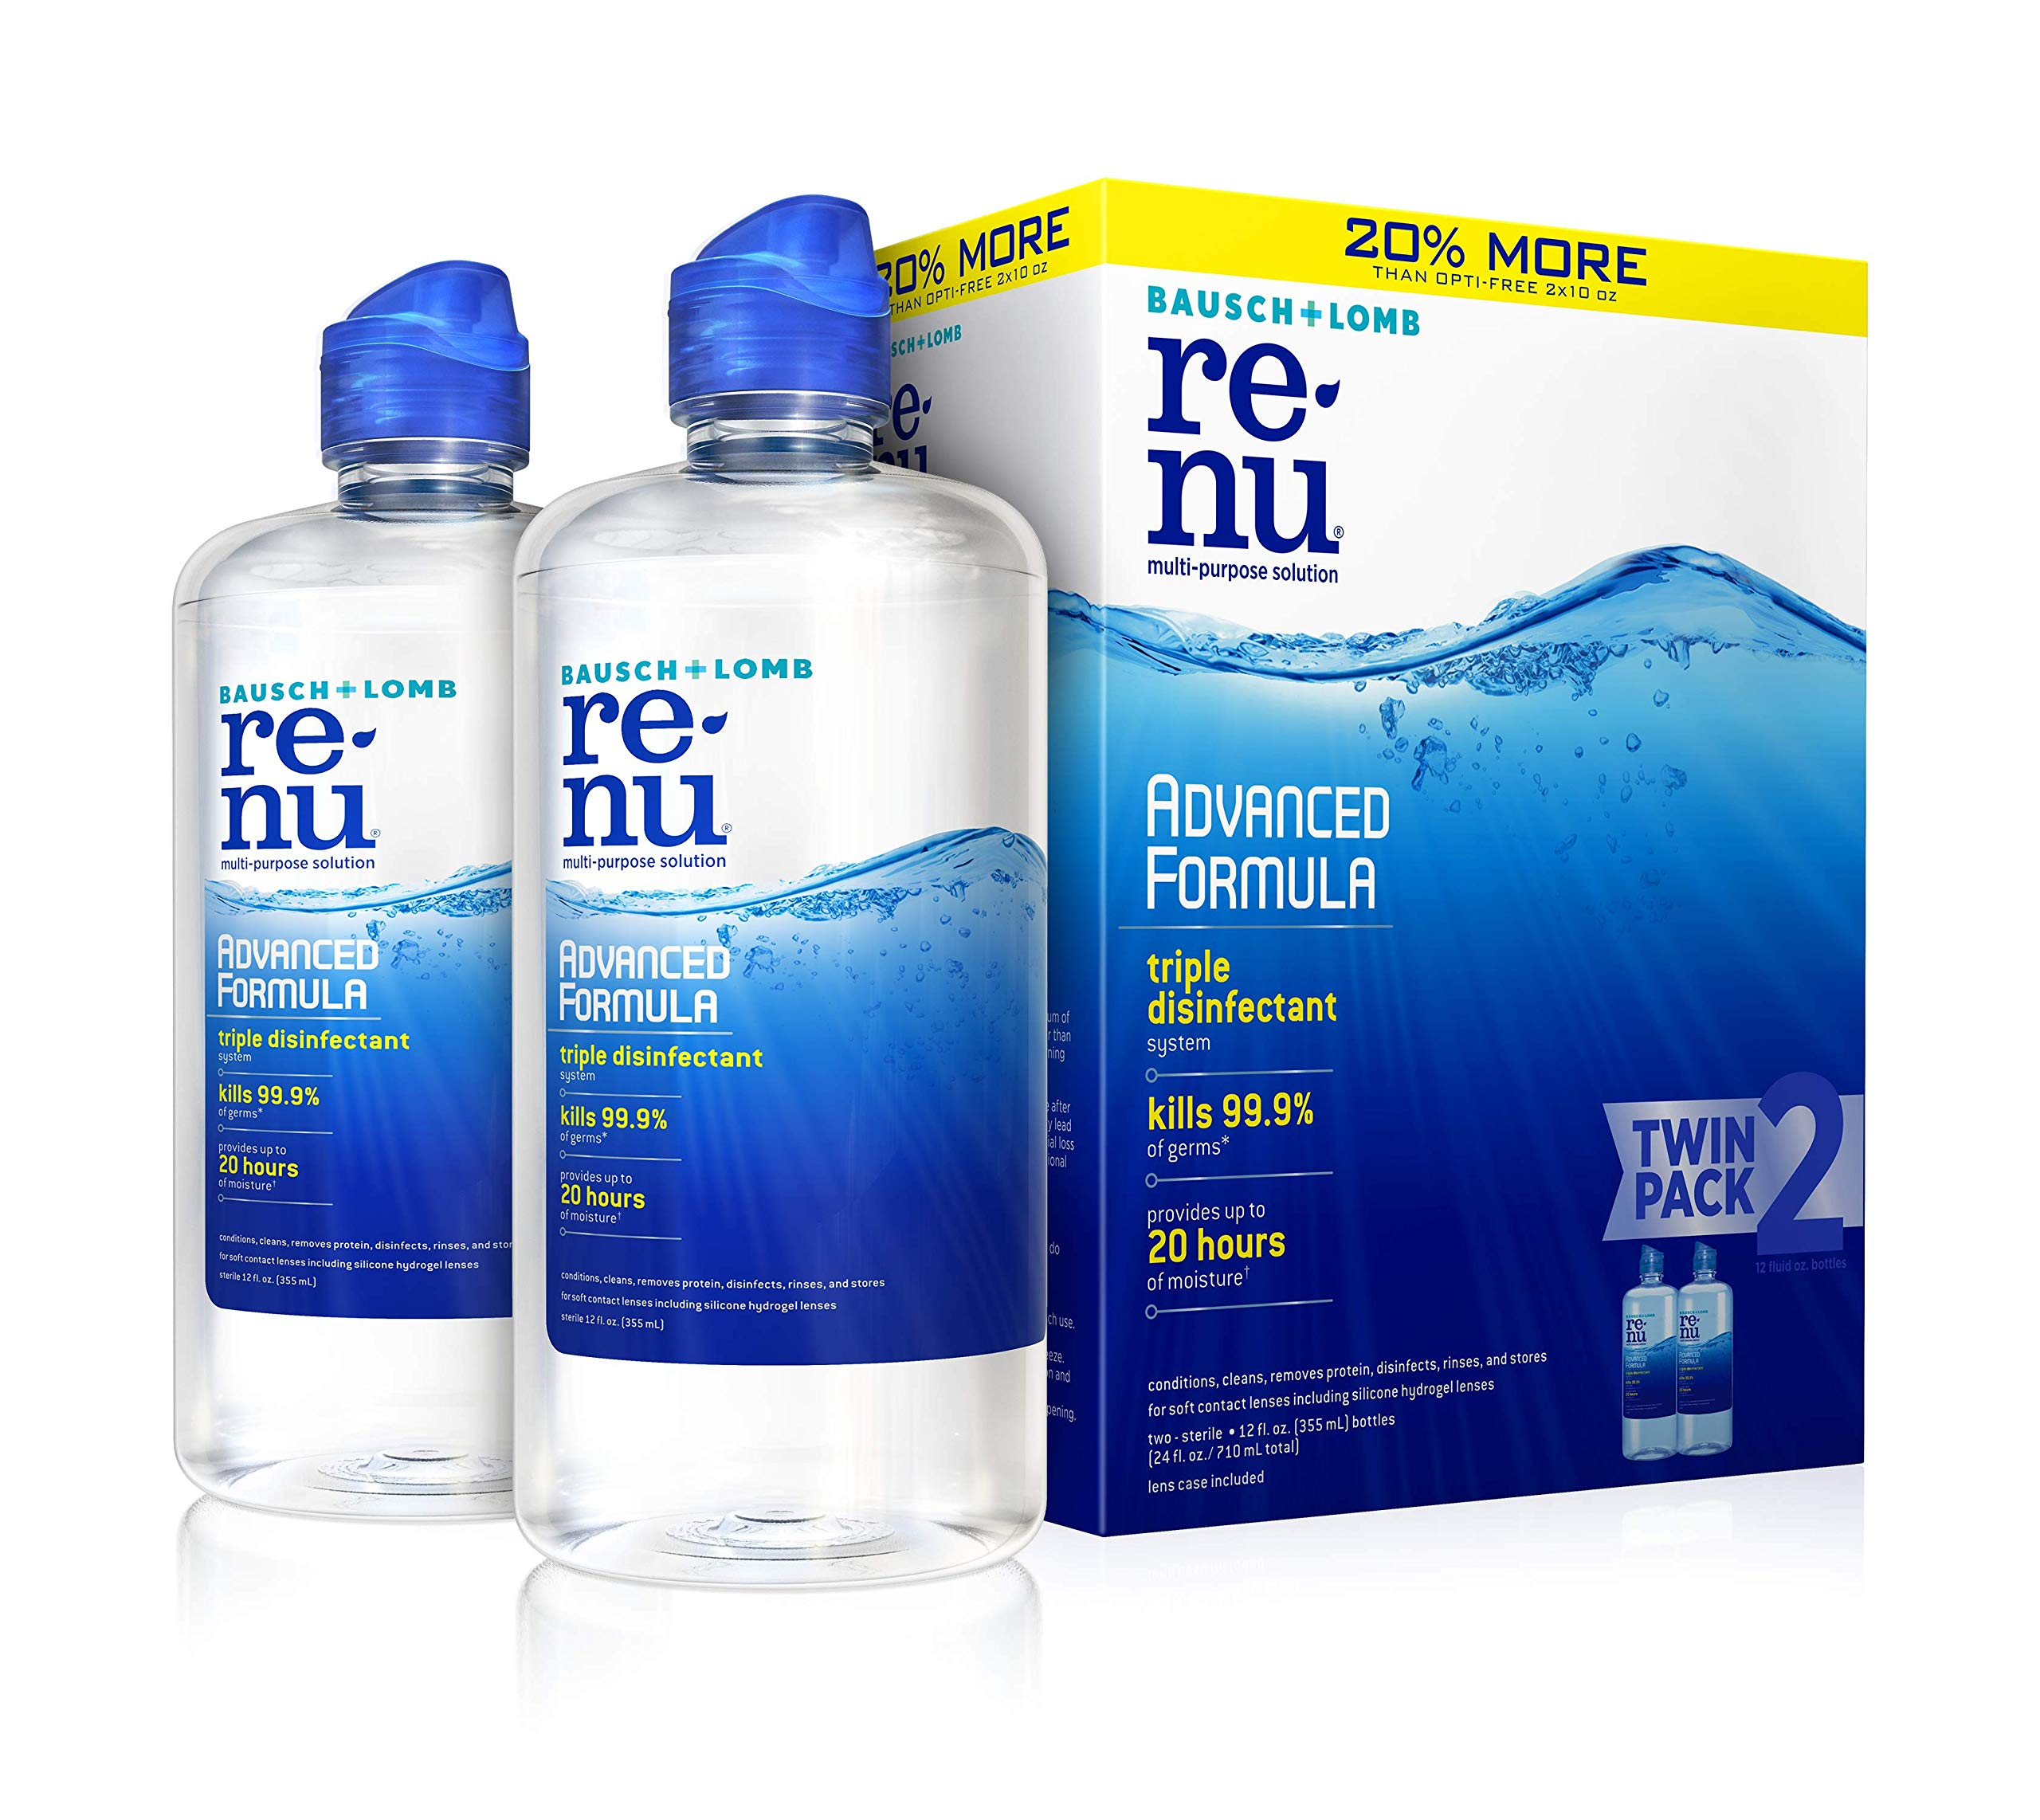 2 pack 12oz Contact Lens Solution by Renu, Multi-Purpose Disinfectant, Advanced Formula Kills 99.9% of Germs: $9.78 or lower (Prime members save extra 20% off) at Amazon